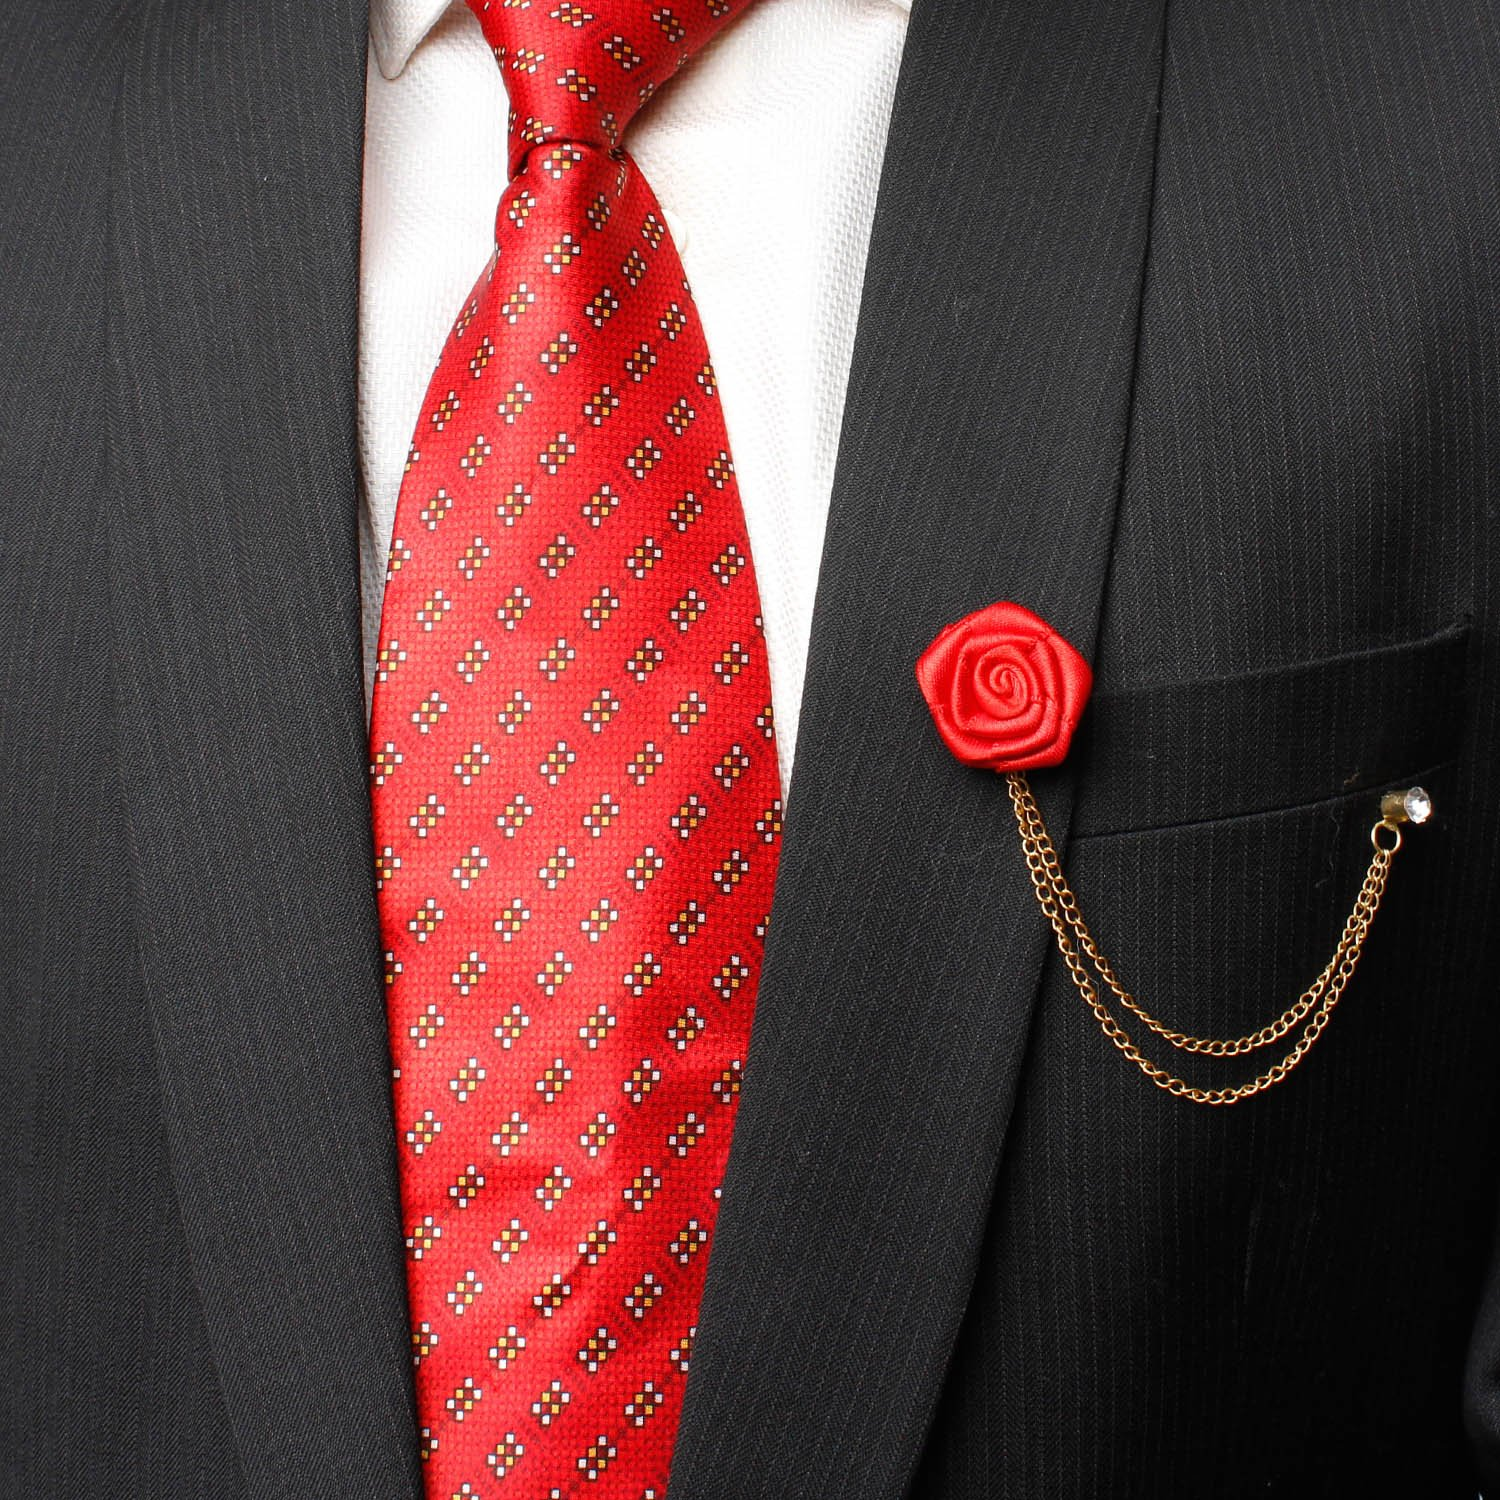 pin fashion exclusive page suit com tie style london trendbridged street men brooch collections